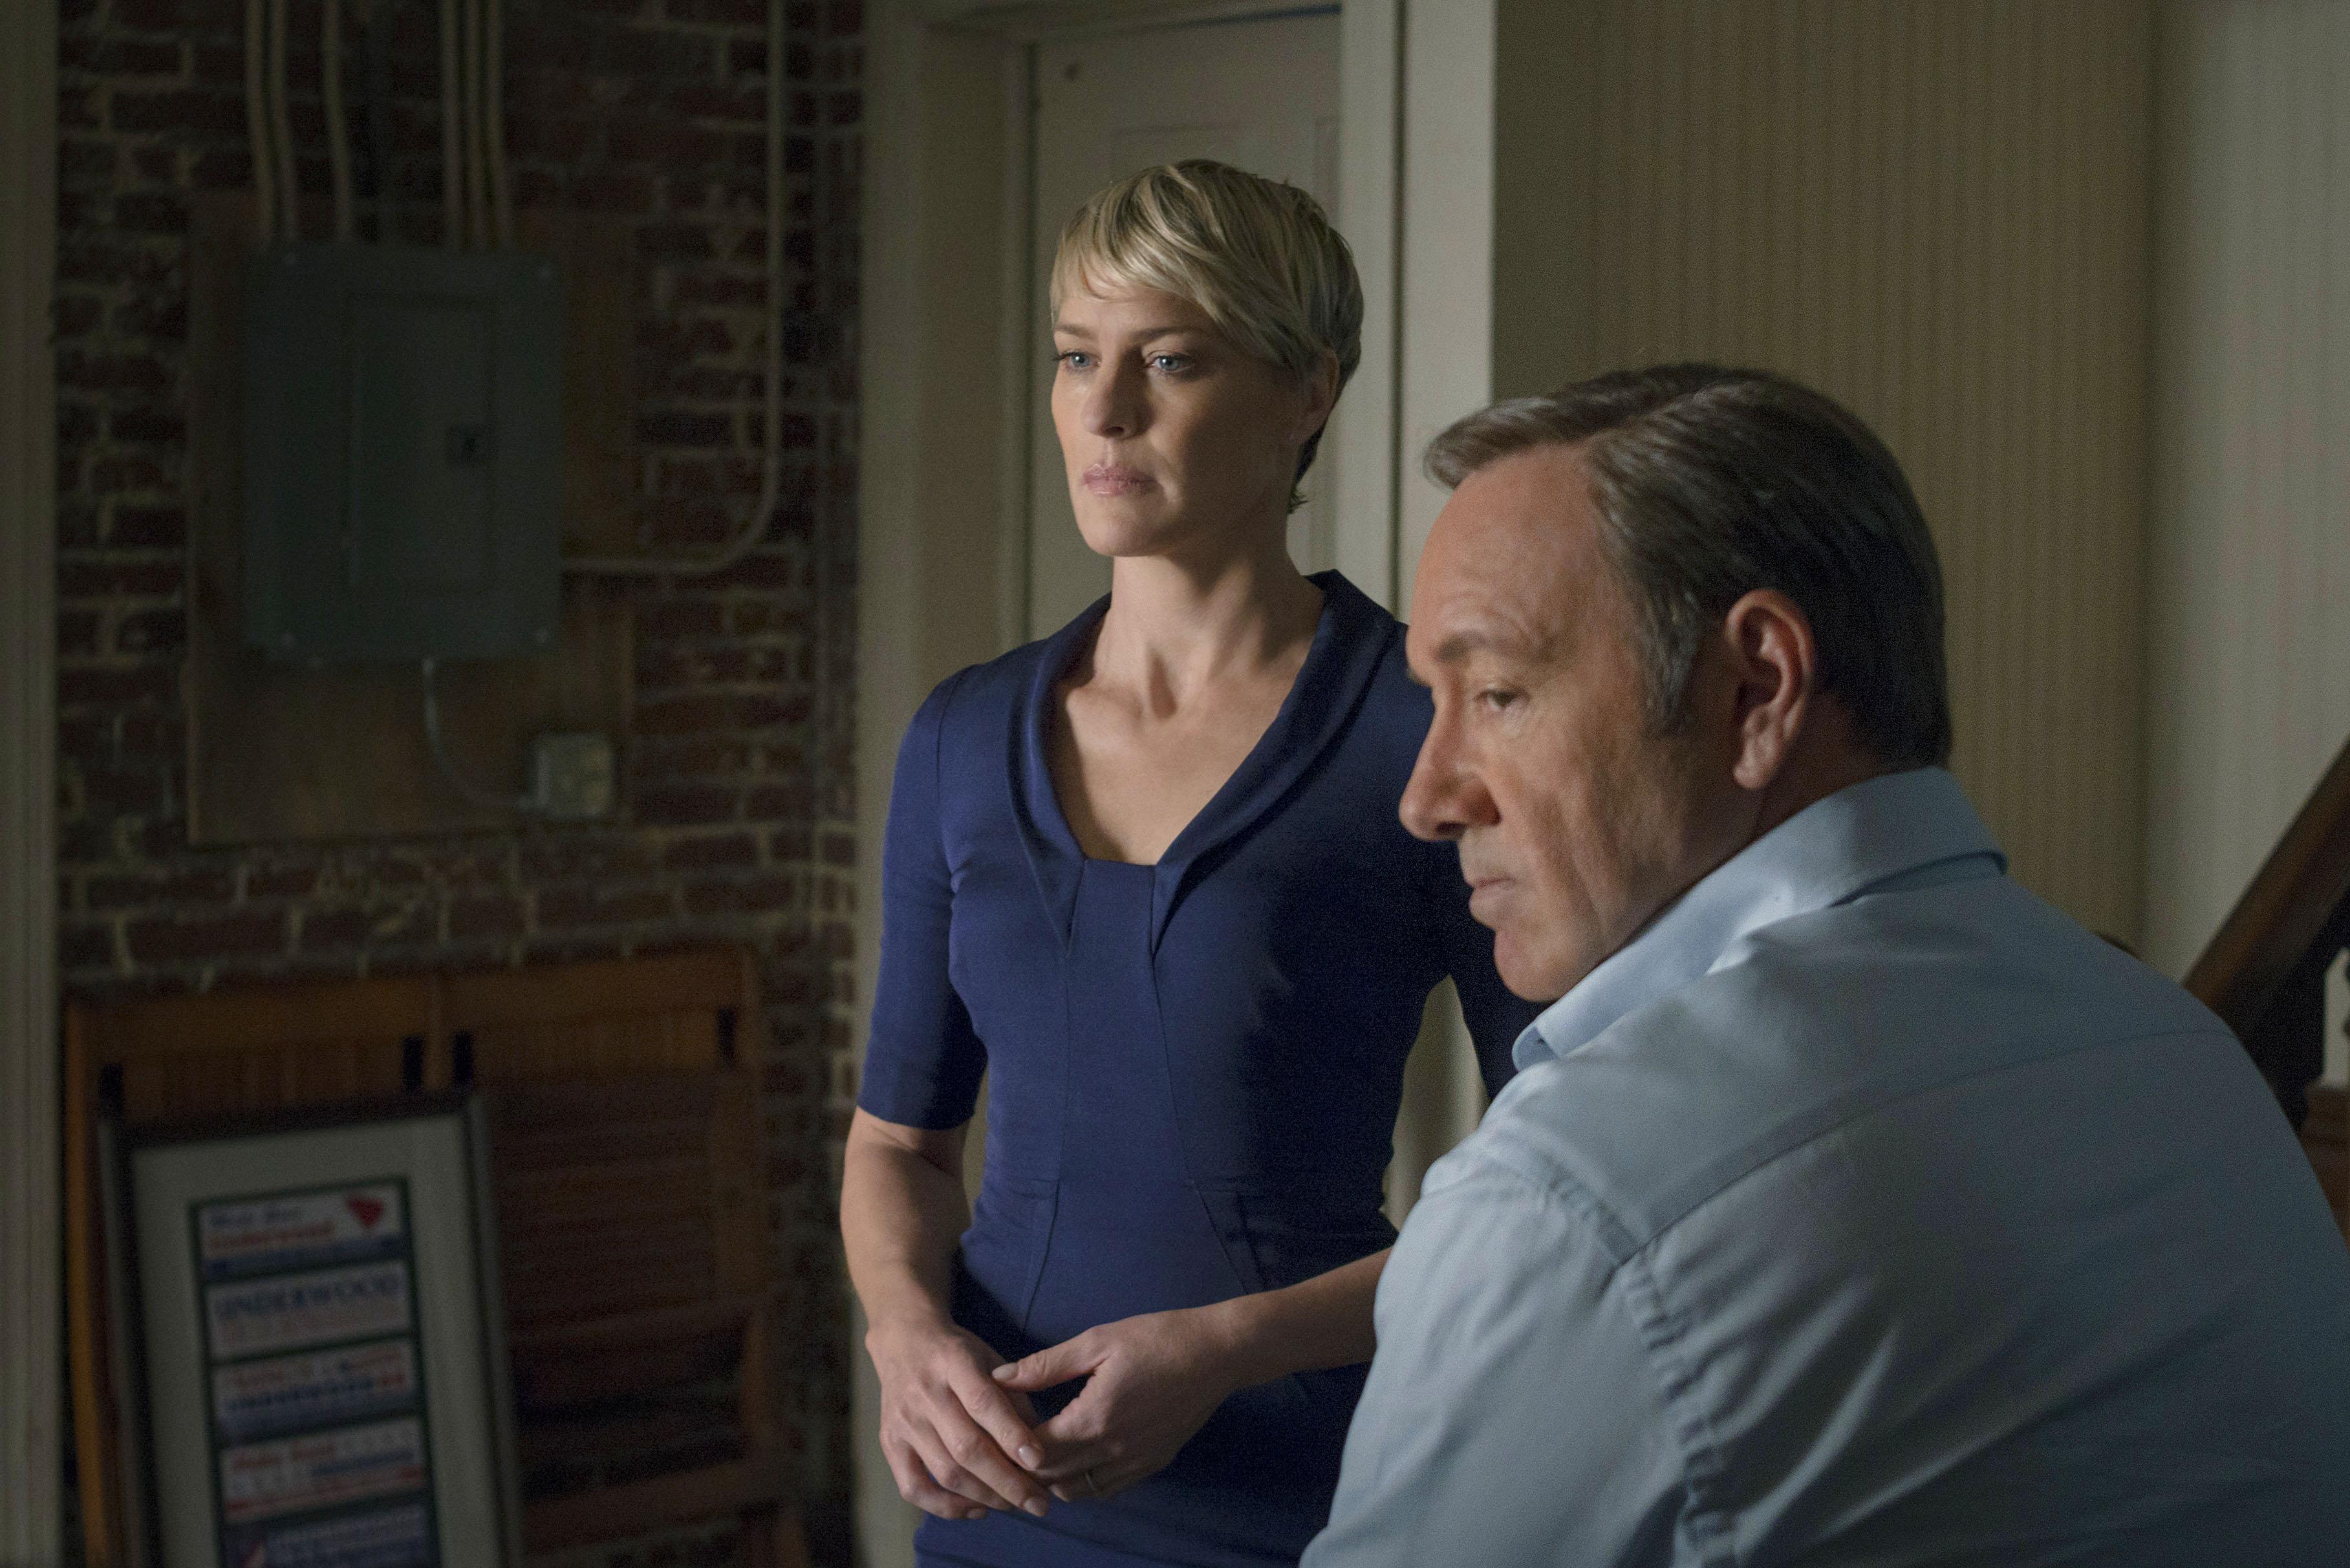 Online-House of Cards